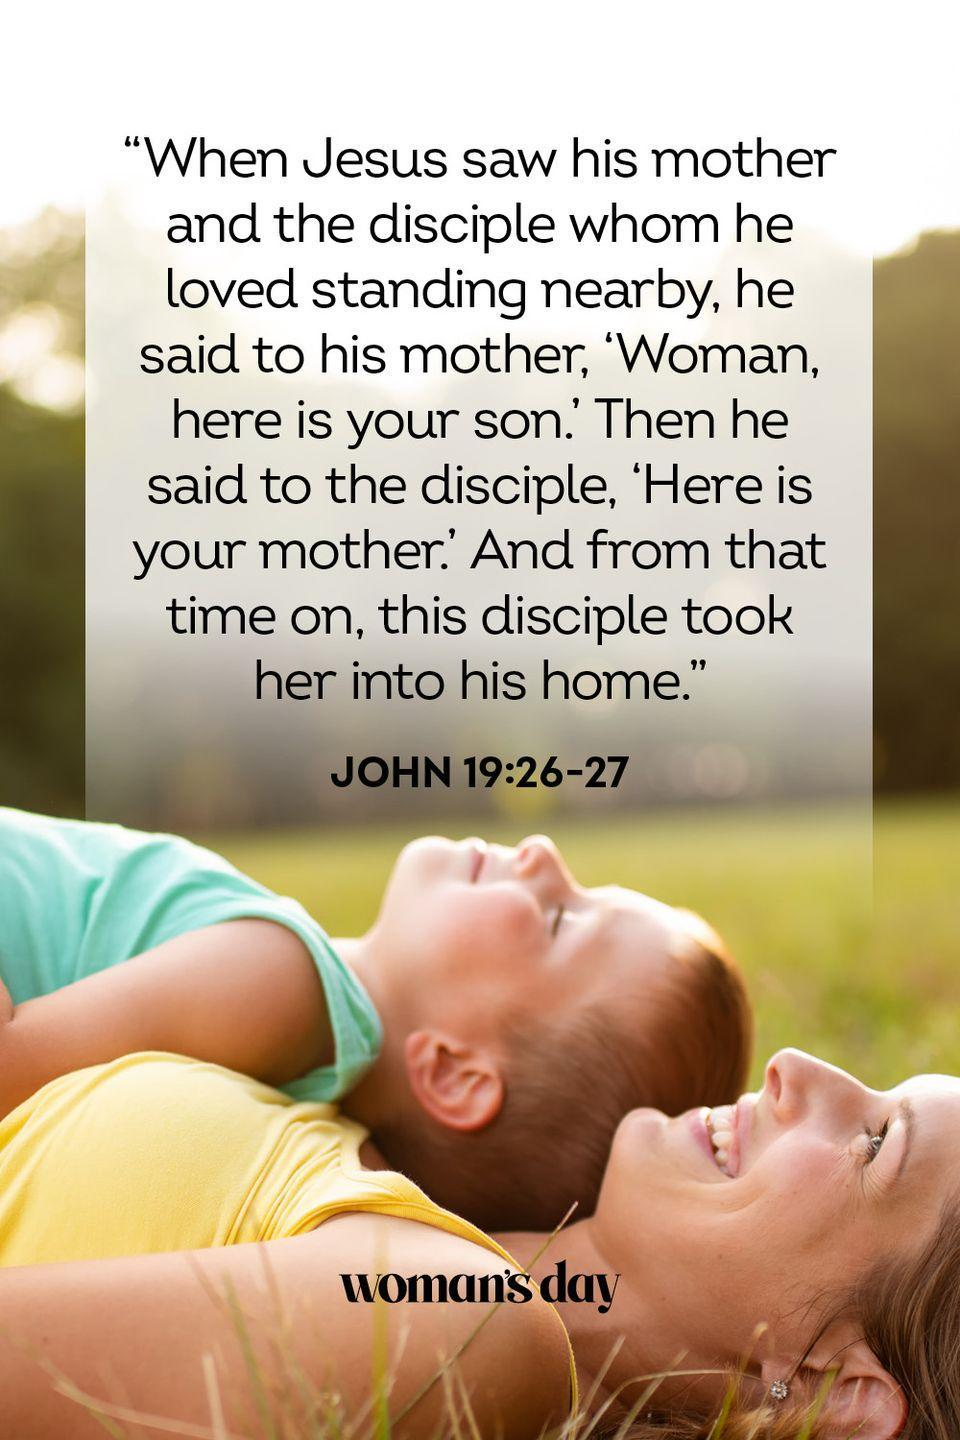 "<p>""When Jesus saw his mother and the disciple whom he loved standing nearby, he said to his mother, 'Woman, here is your son.' Then he said to the disciple, 'Here is your mother.' And from that time on, this disciple took her into his home.""</p><p><strong>The Good News: </strong>Jesus' unwavering love for His mother, Mary, set the standard for how children should honor their own mothers. </p>"